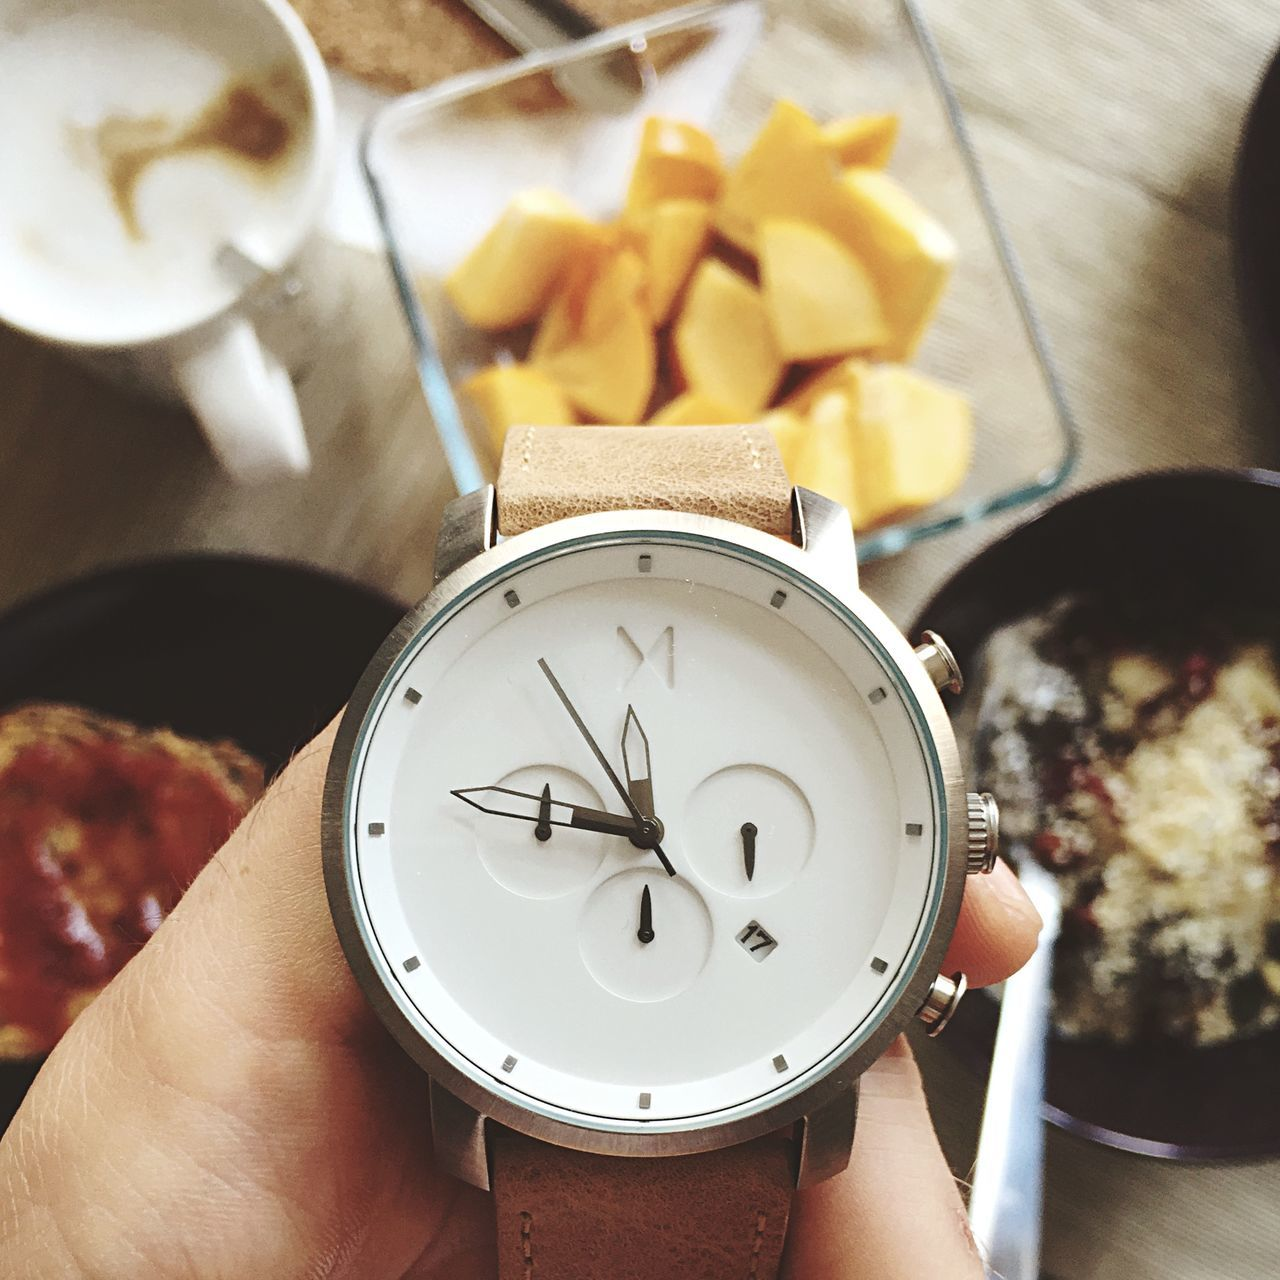 Beautiful stock photos of uhren, time, clock, instrument of time, minute hand